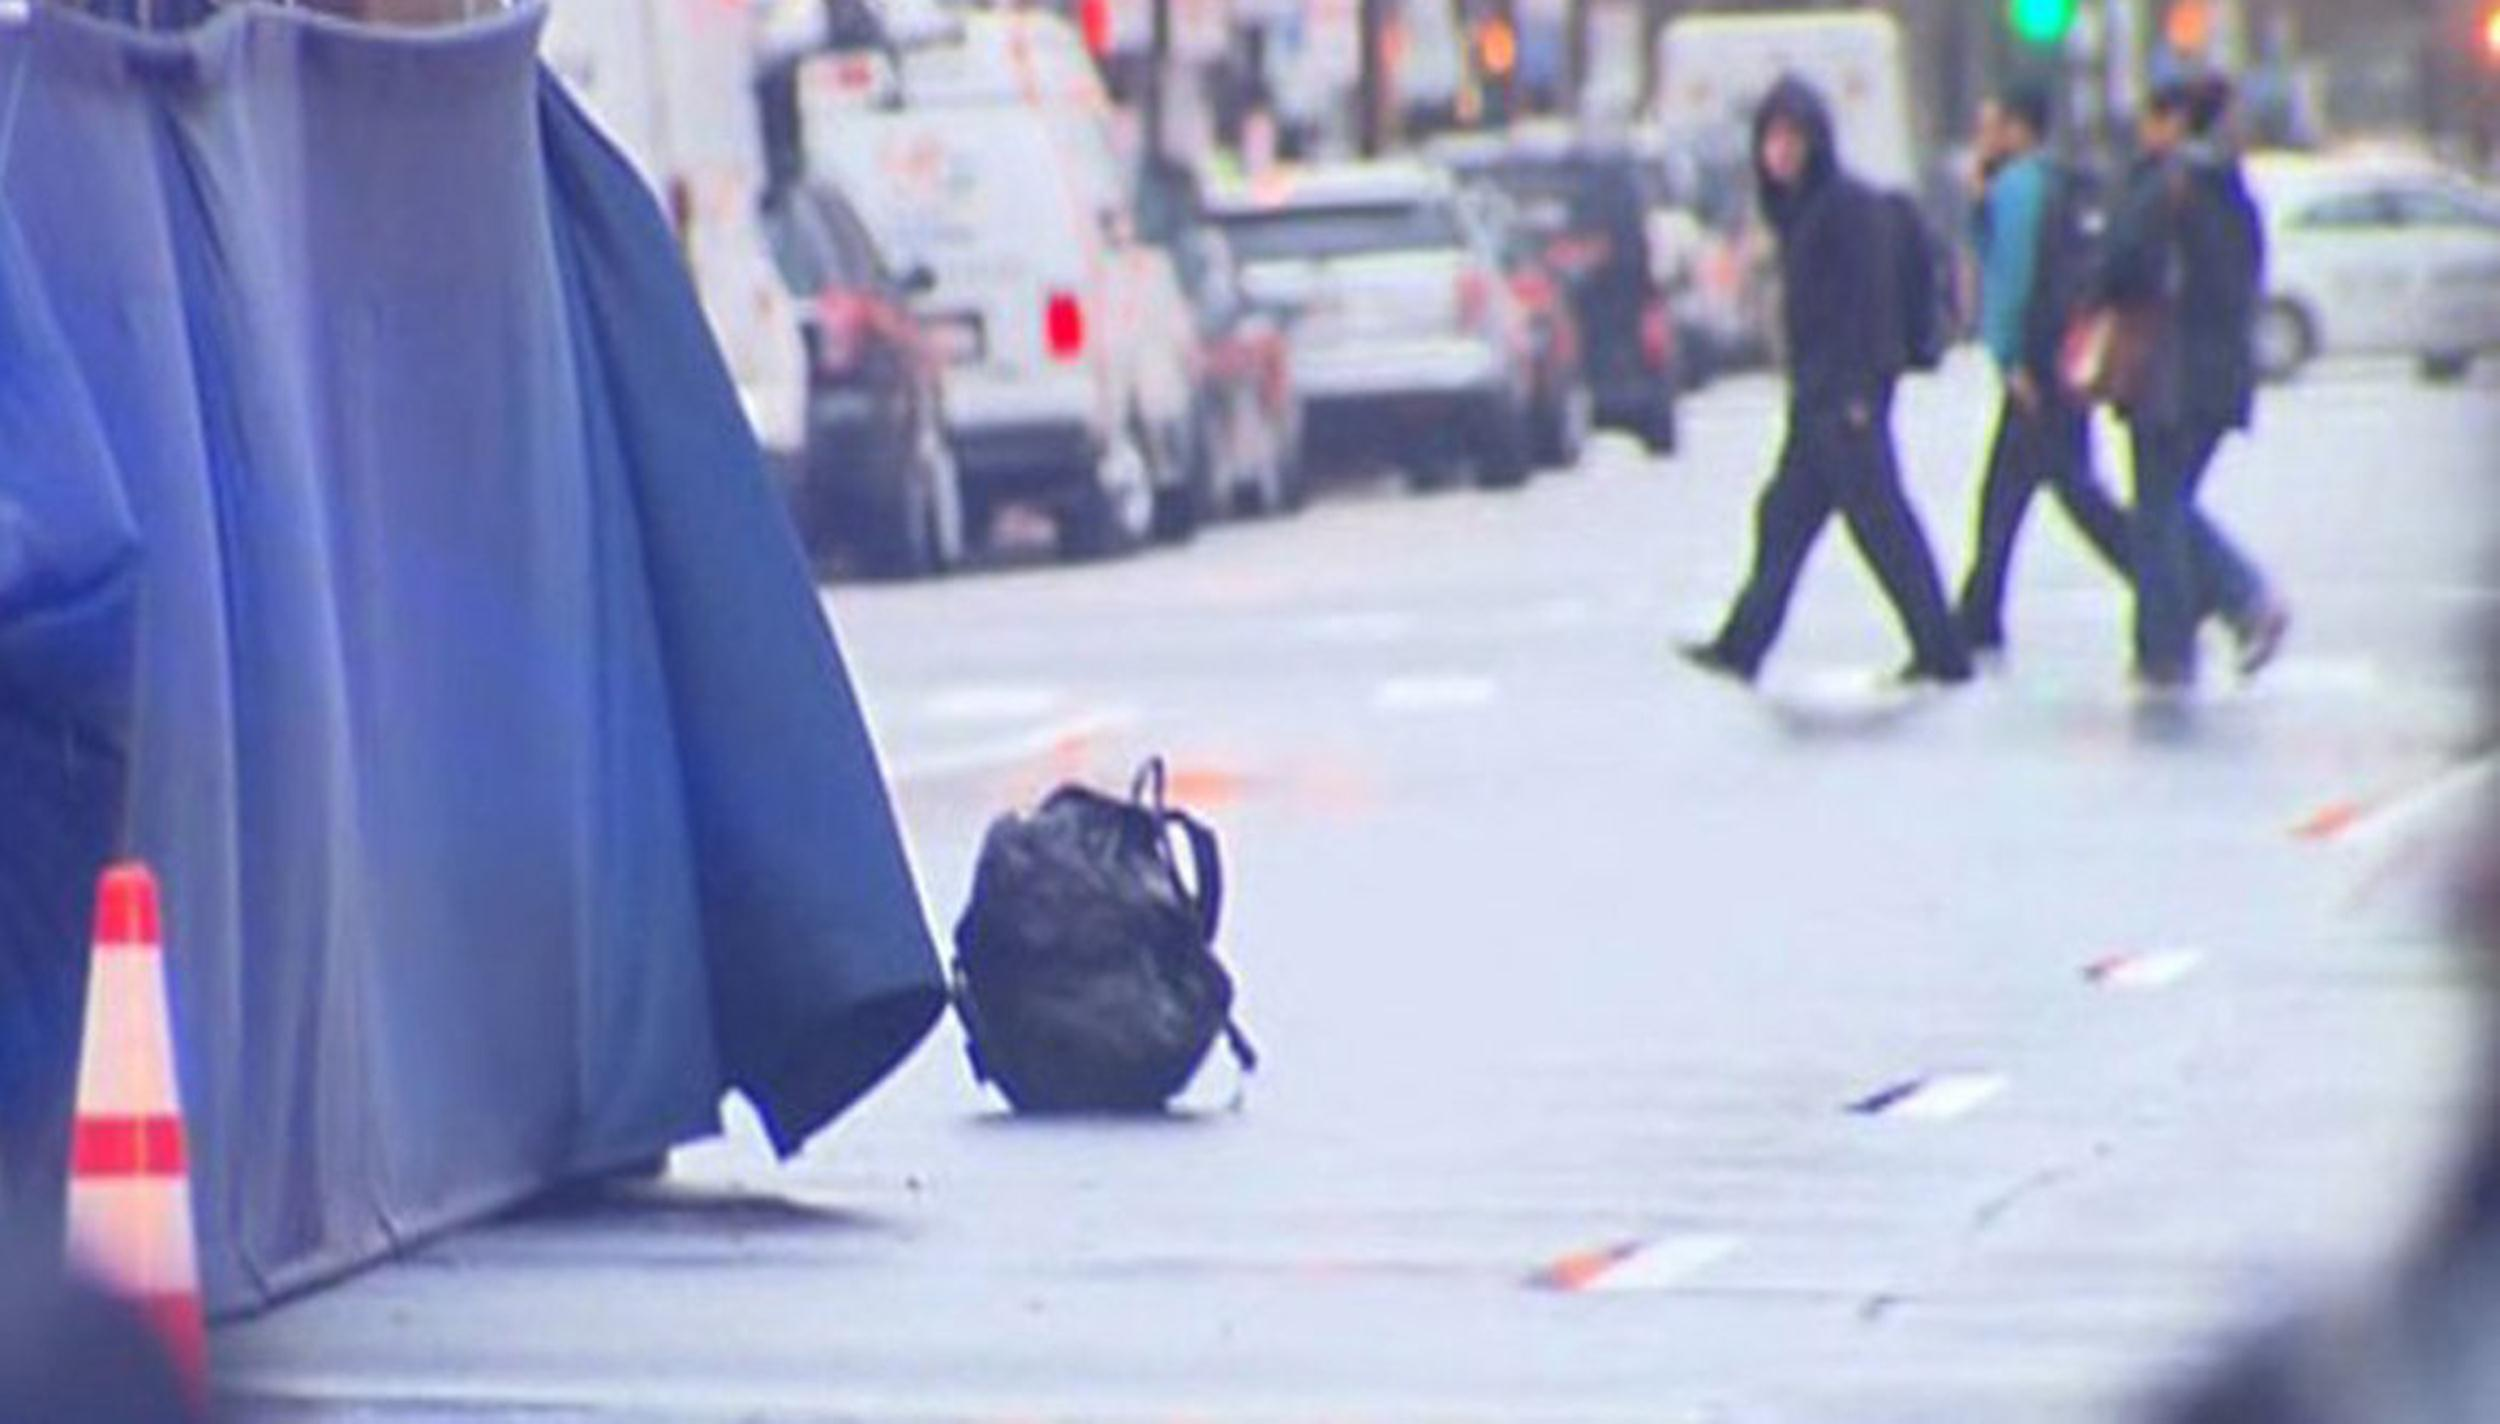 Image: A backpack that was left unattended on Boylston